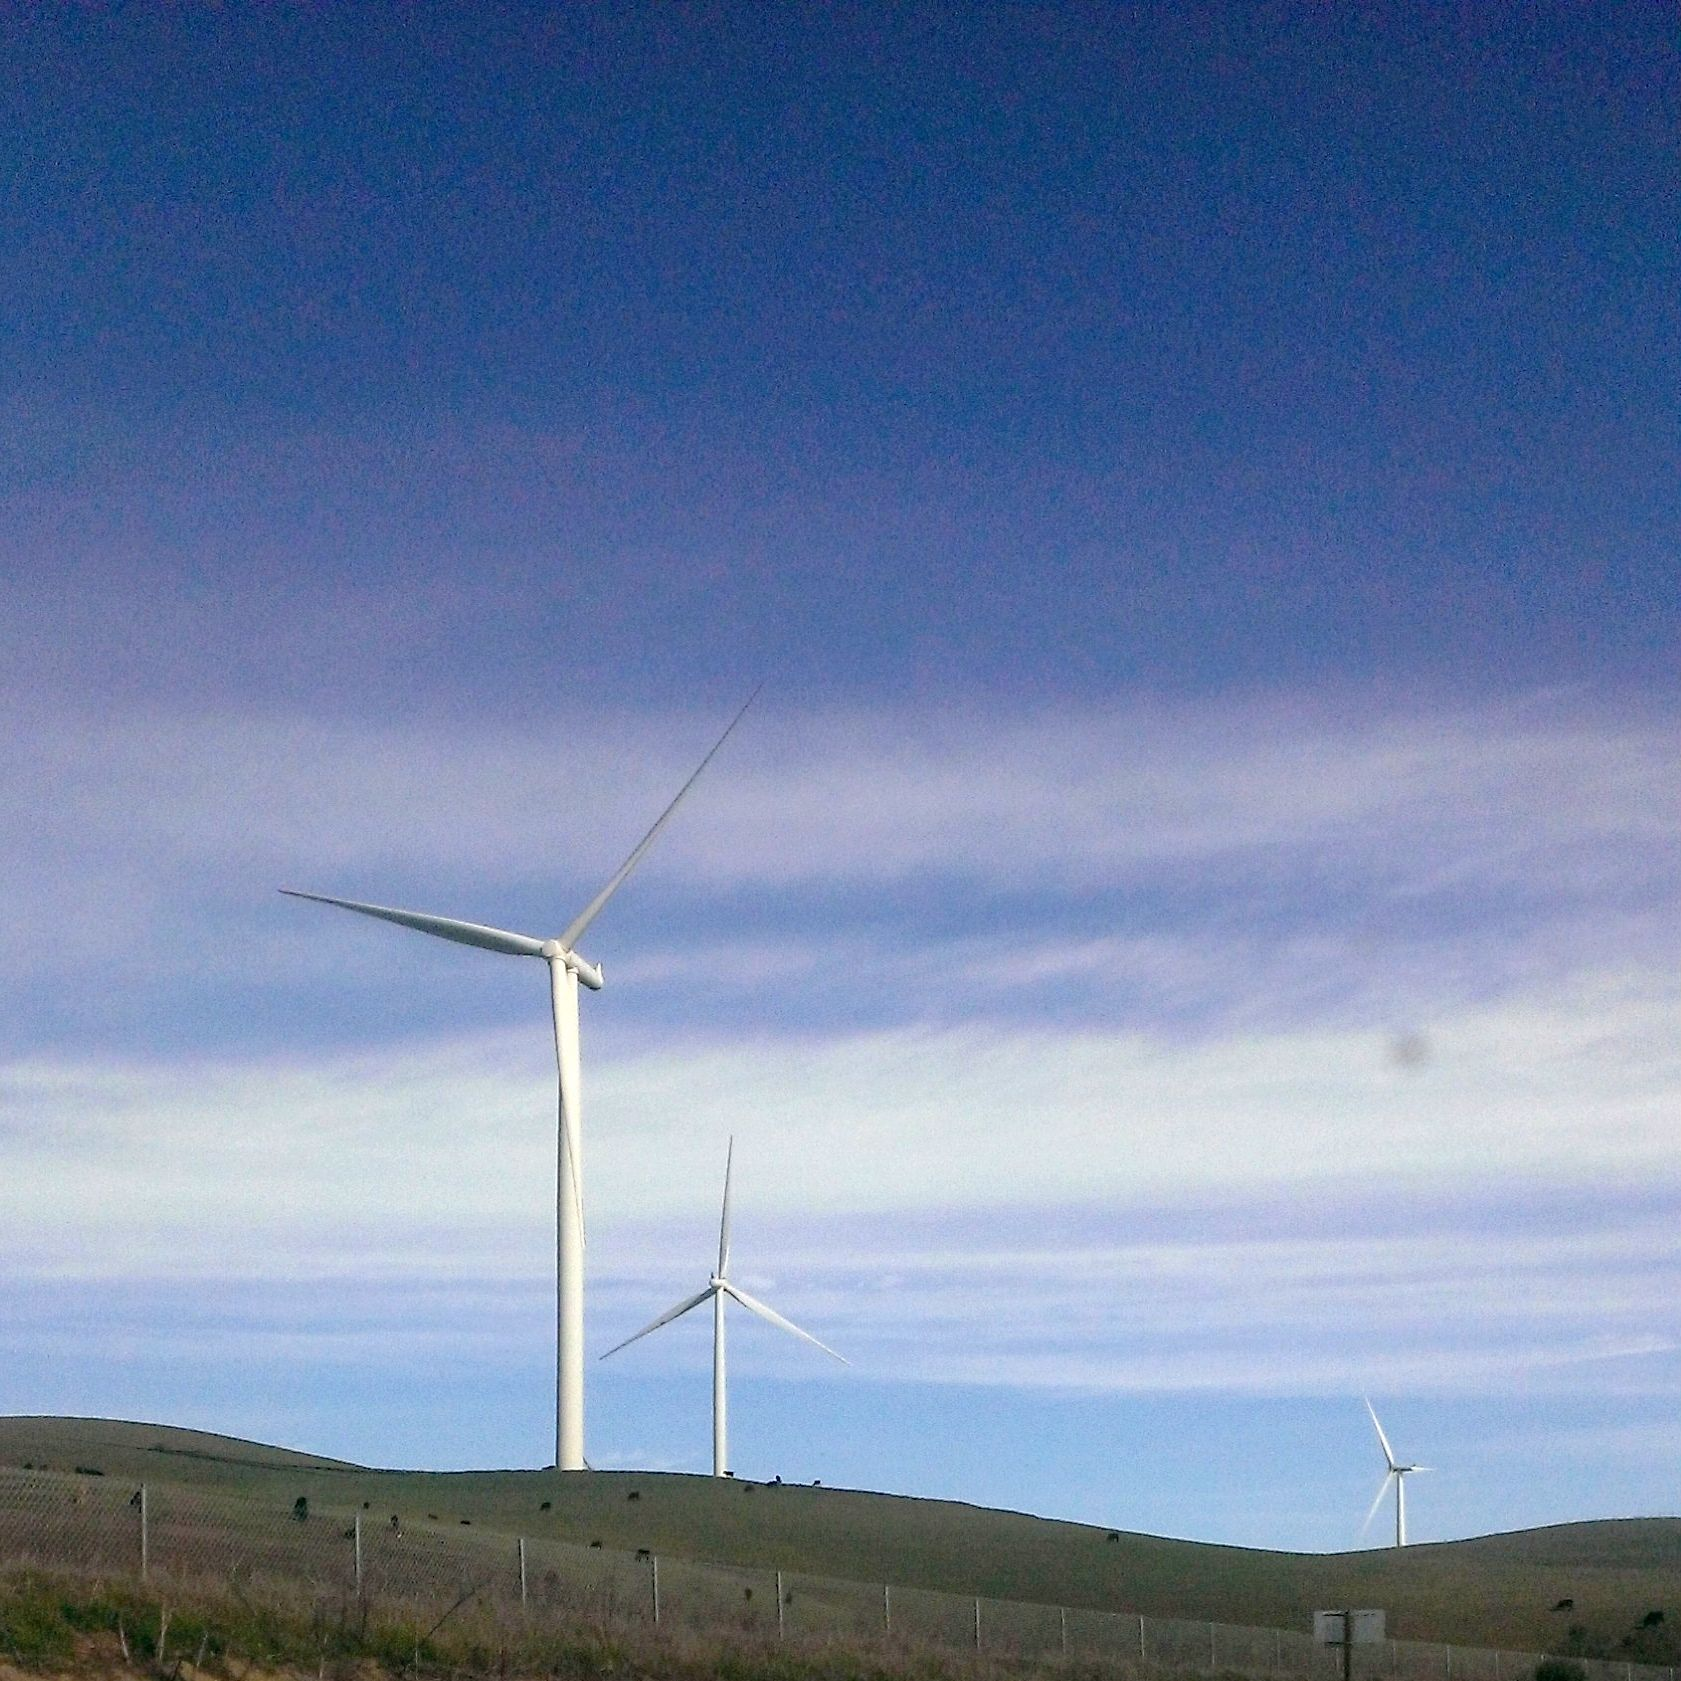 January 18, 2015 | Francessssca | Blue skies, grazing cattle, and a windfarm at the top of Vasco